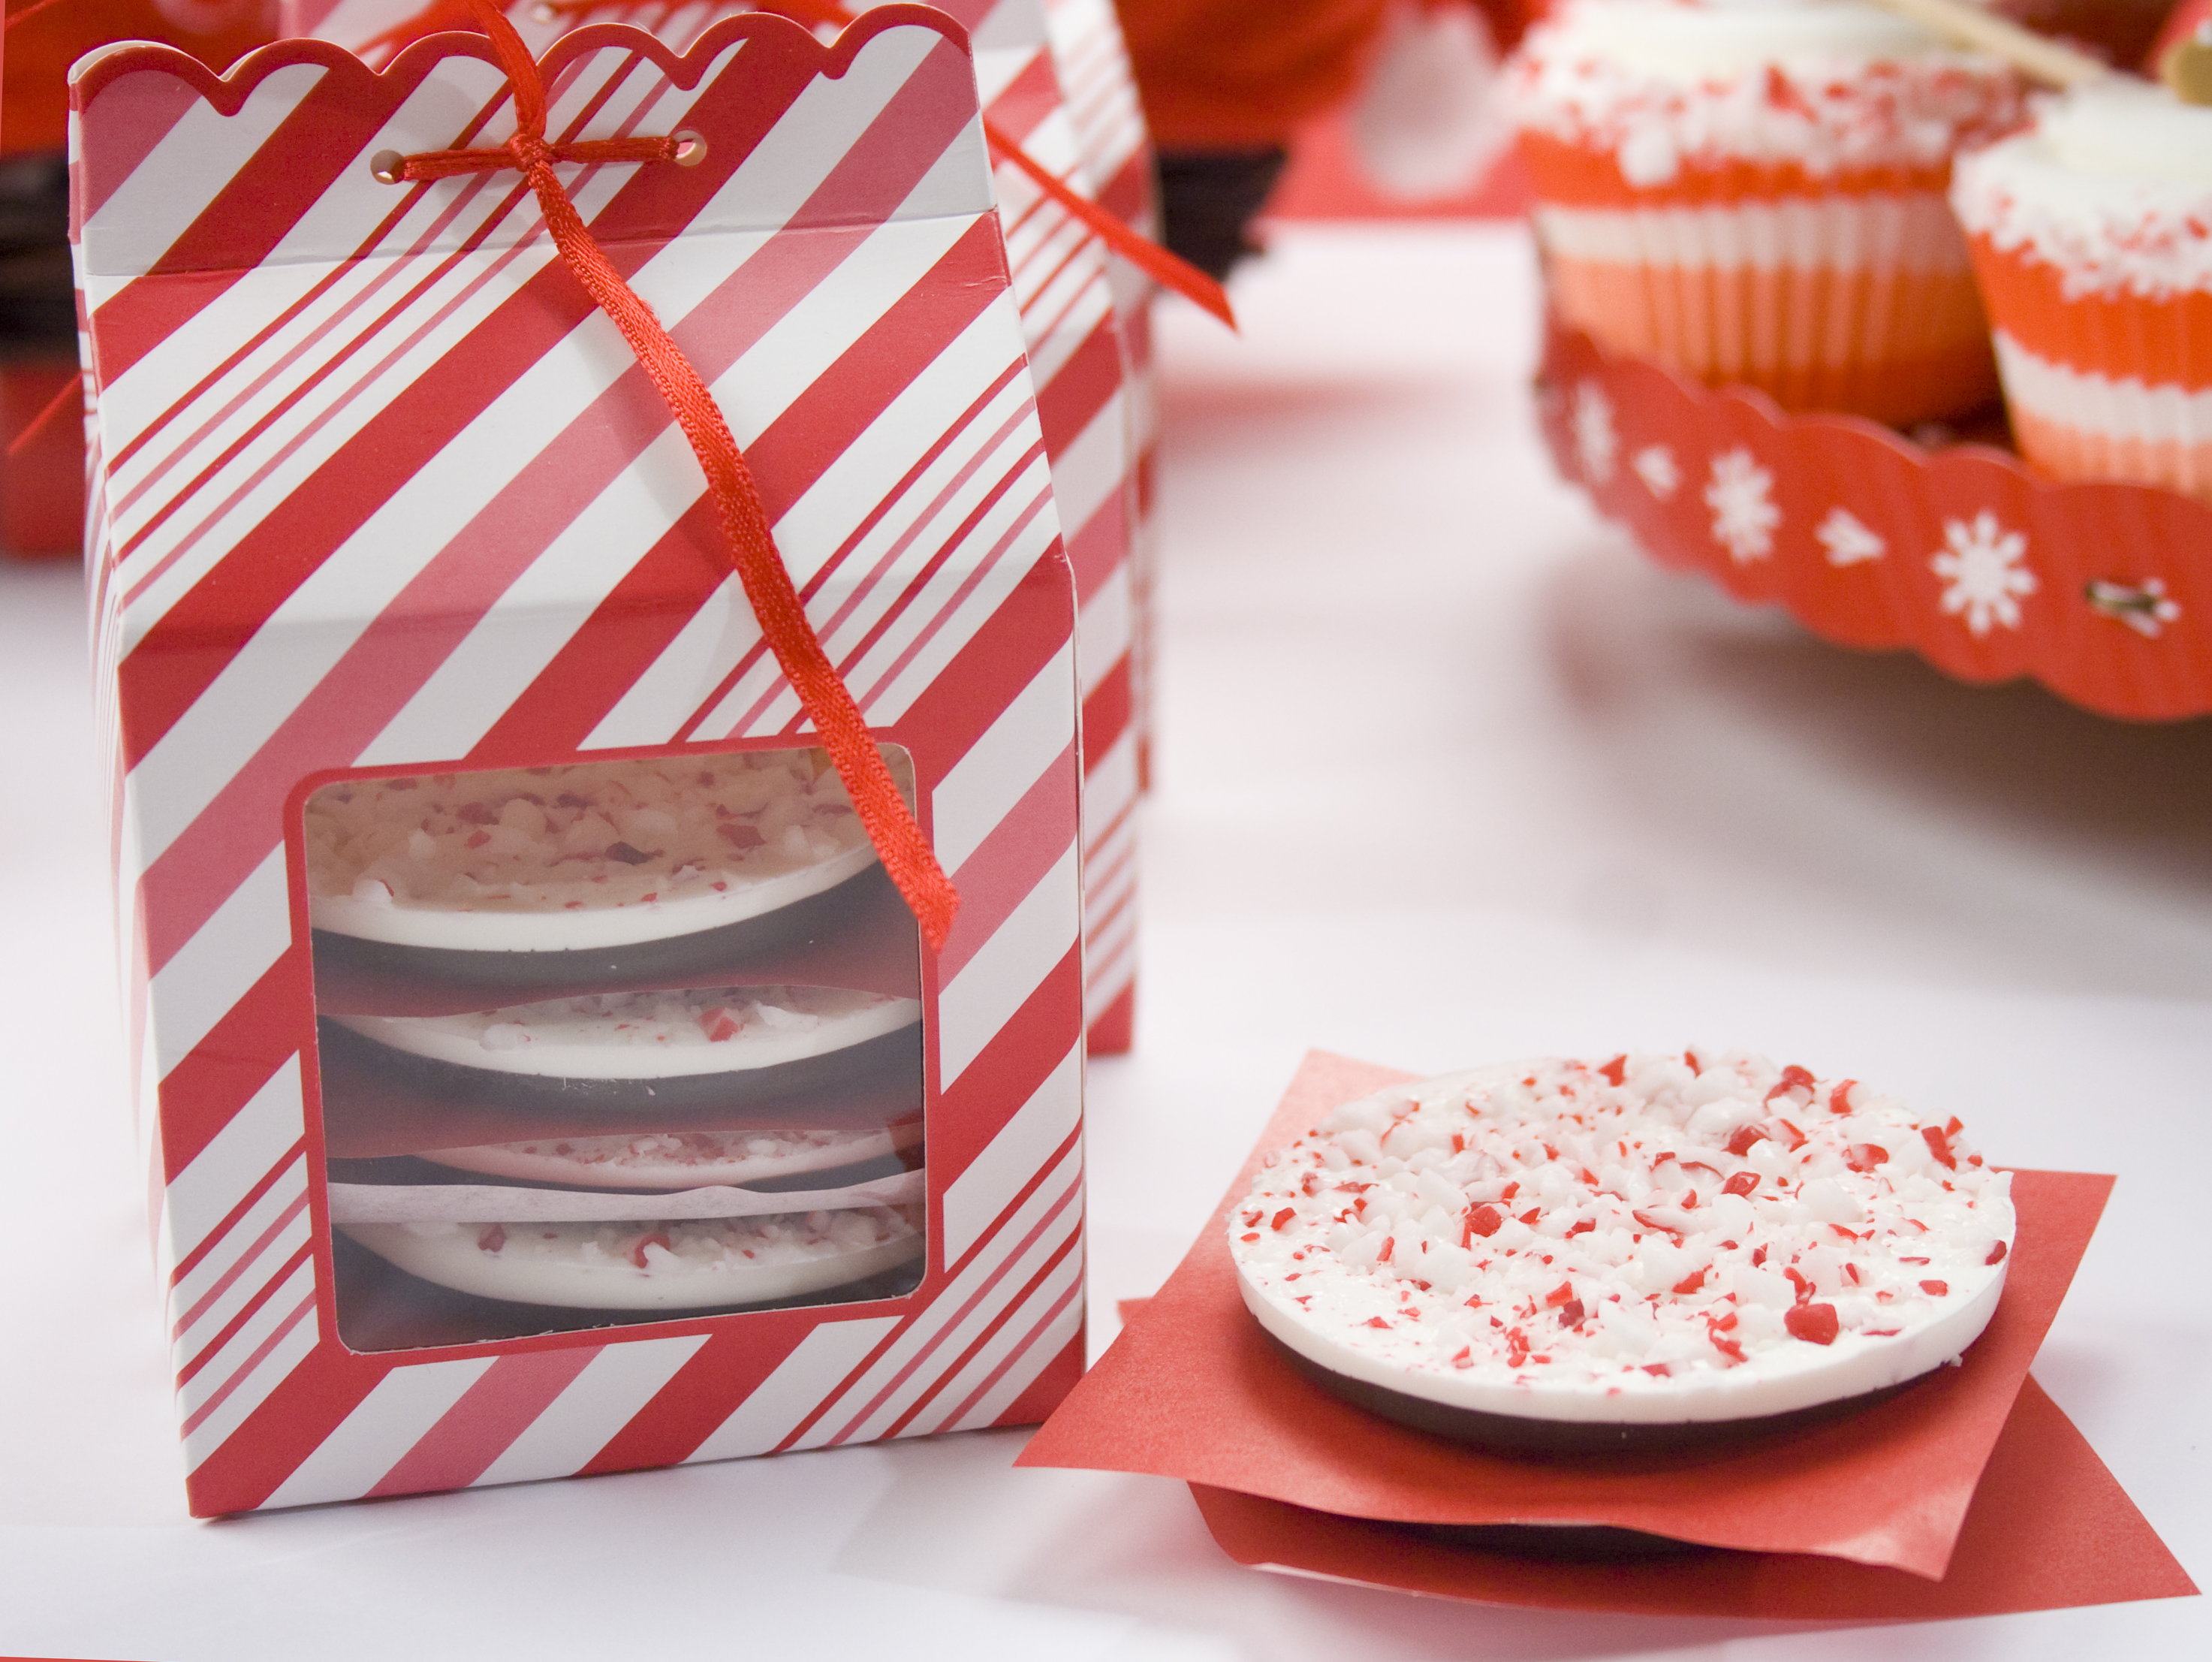 Sweet Christmas- Candy cane and cupcake theme